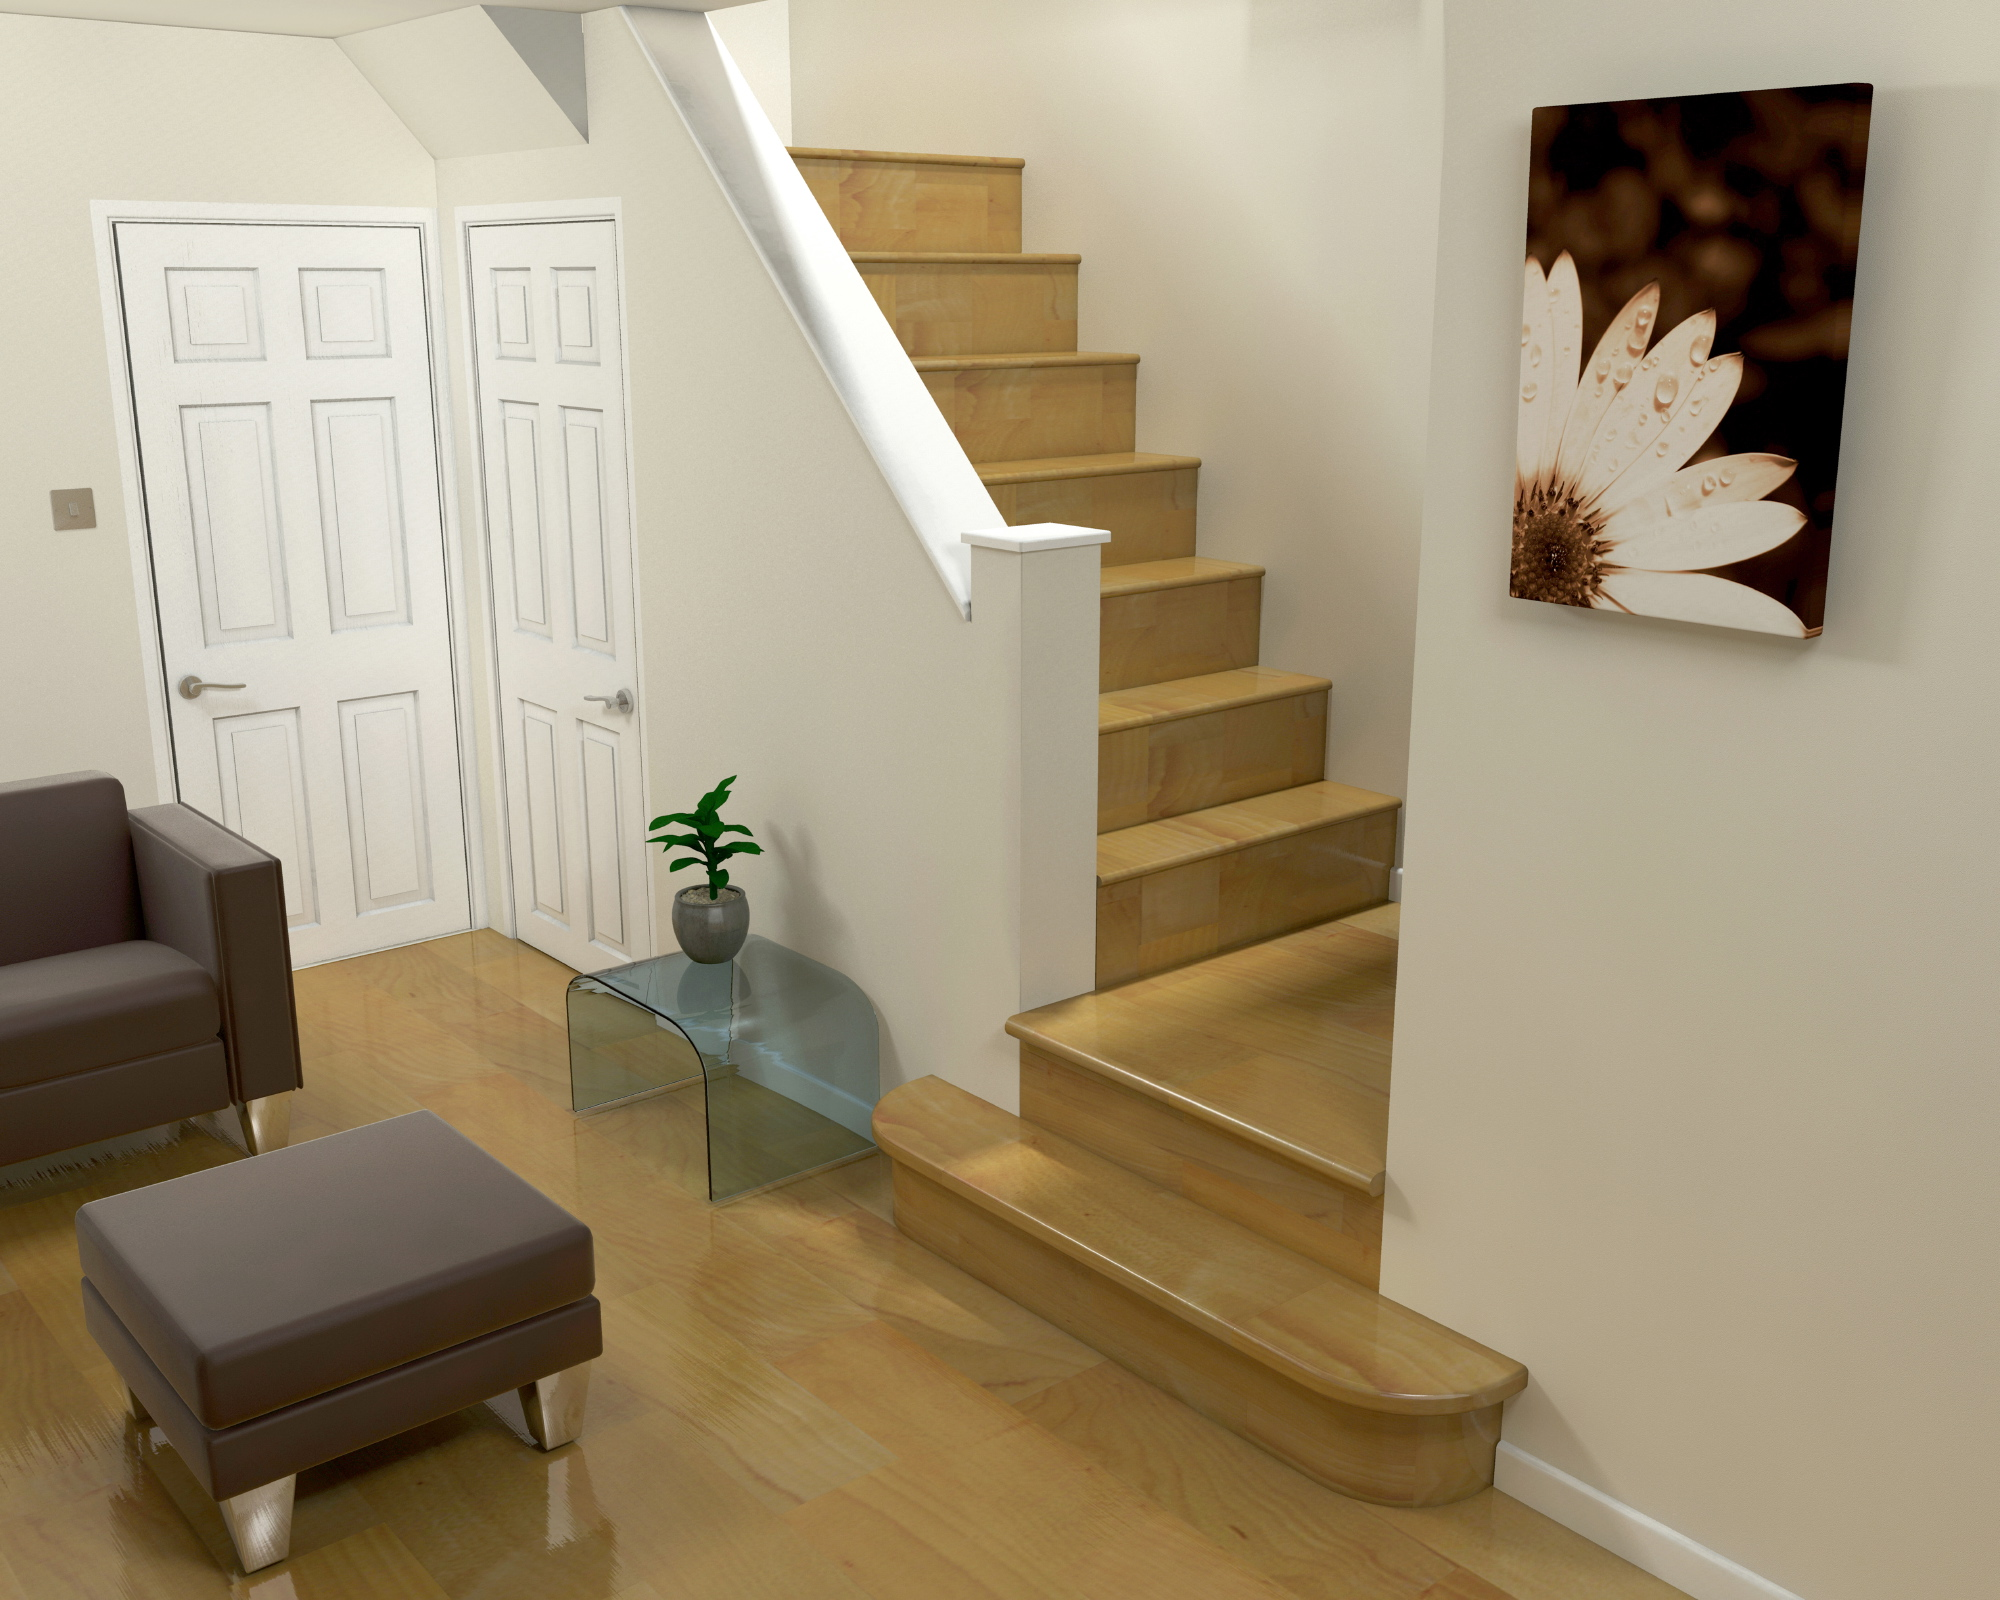 3d design 3d design of a room with stairs interior design marbella 3d ...